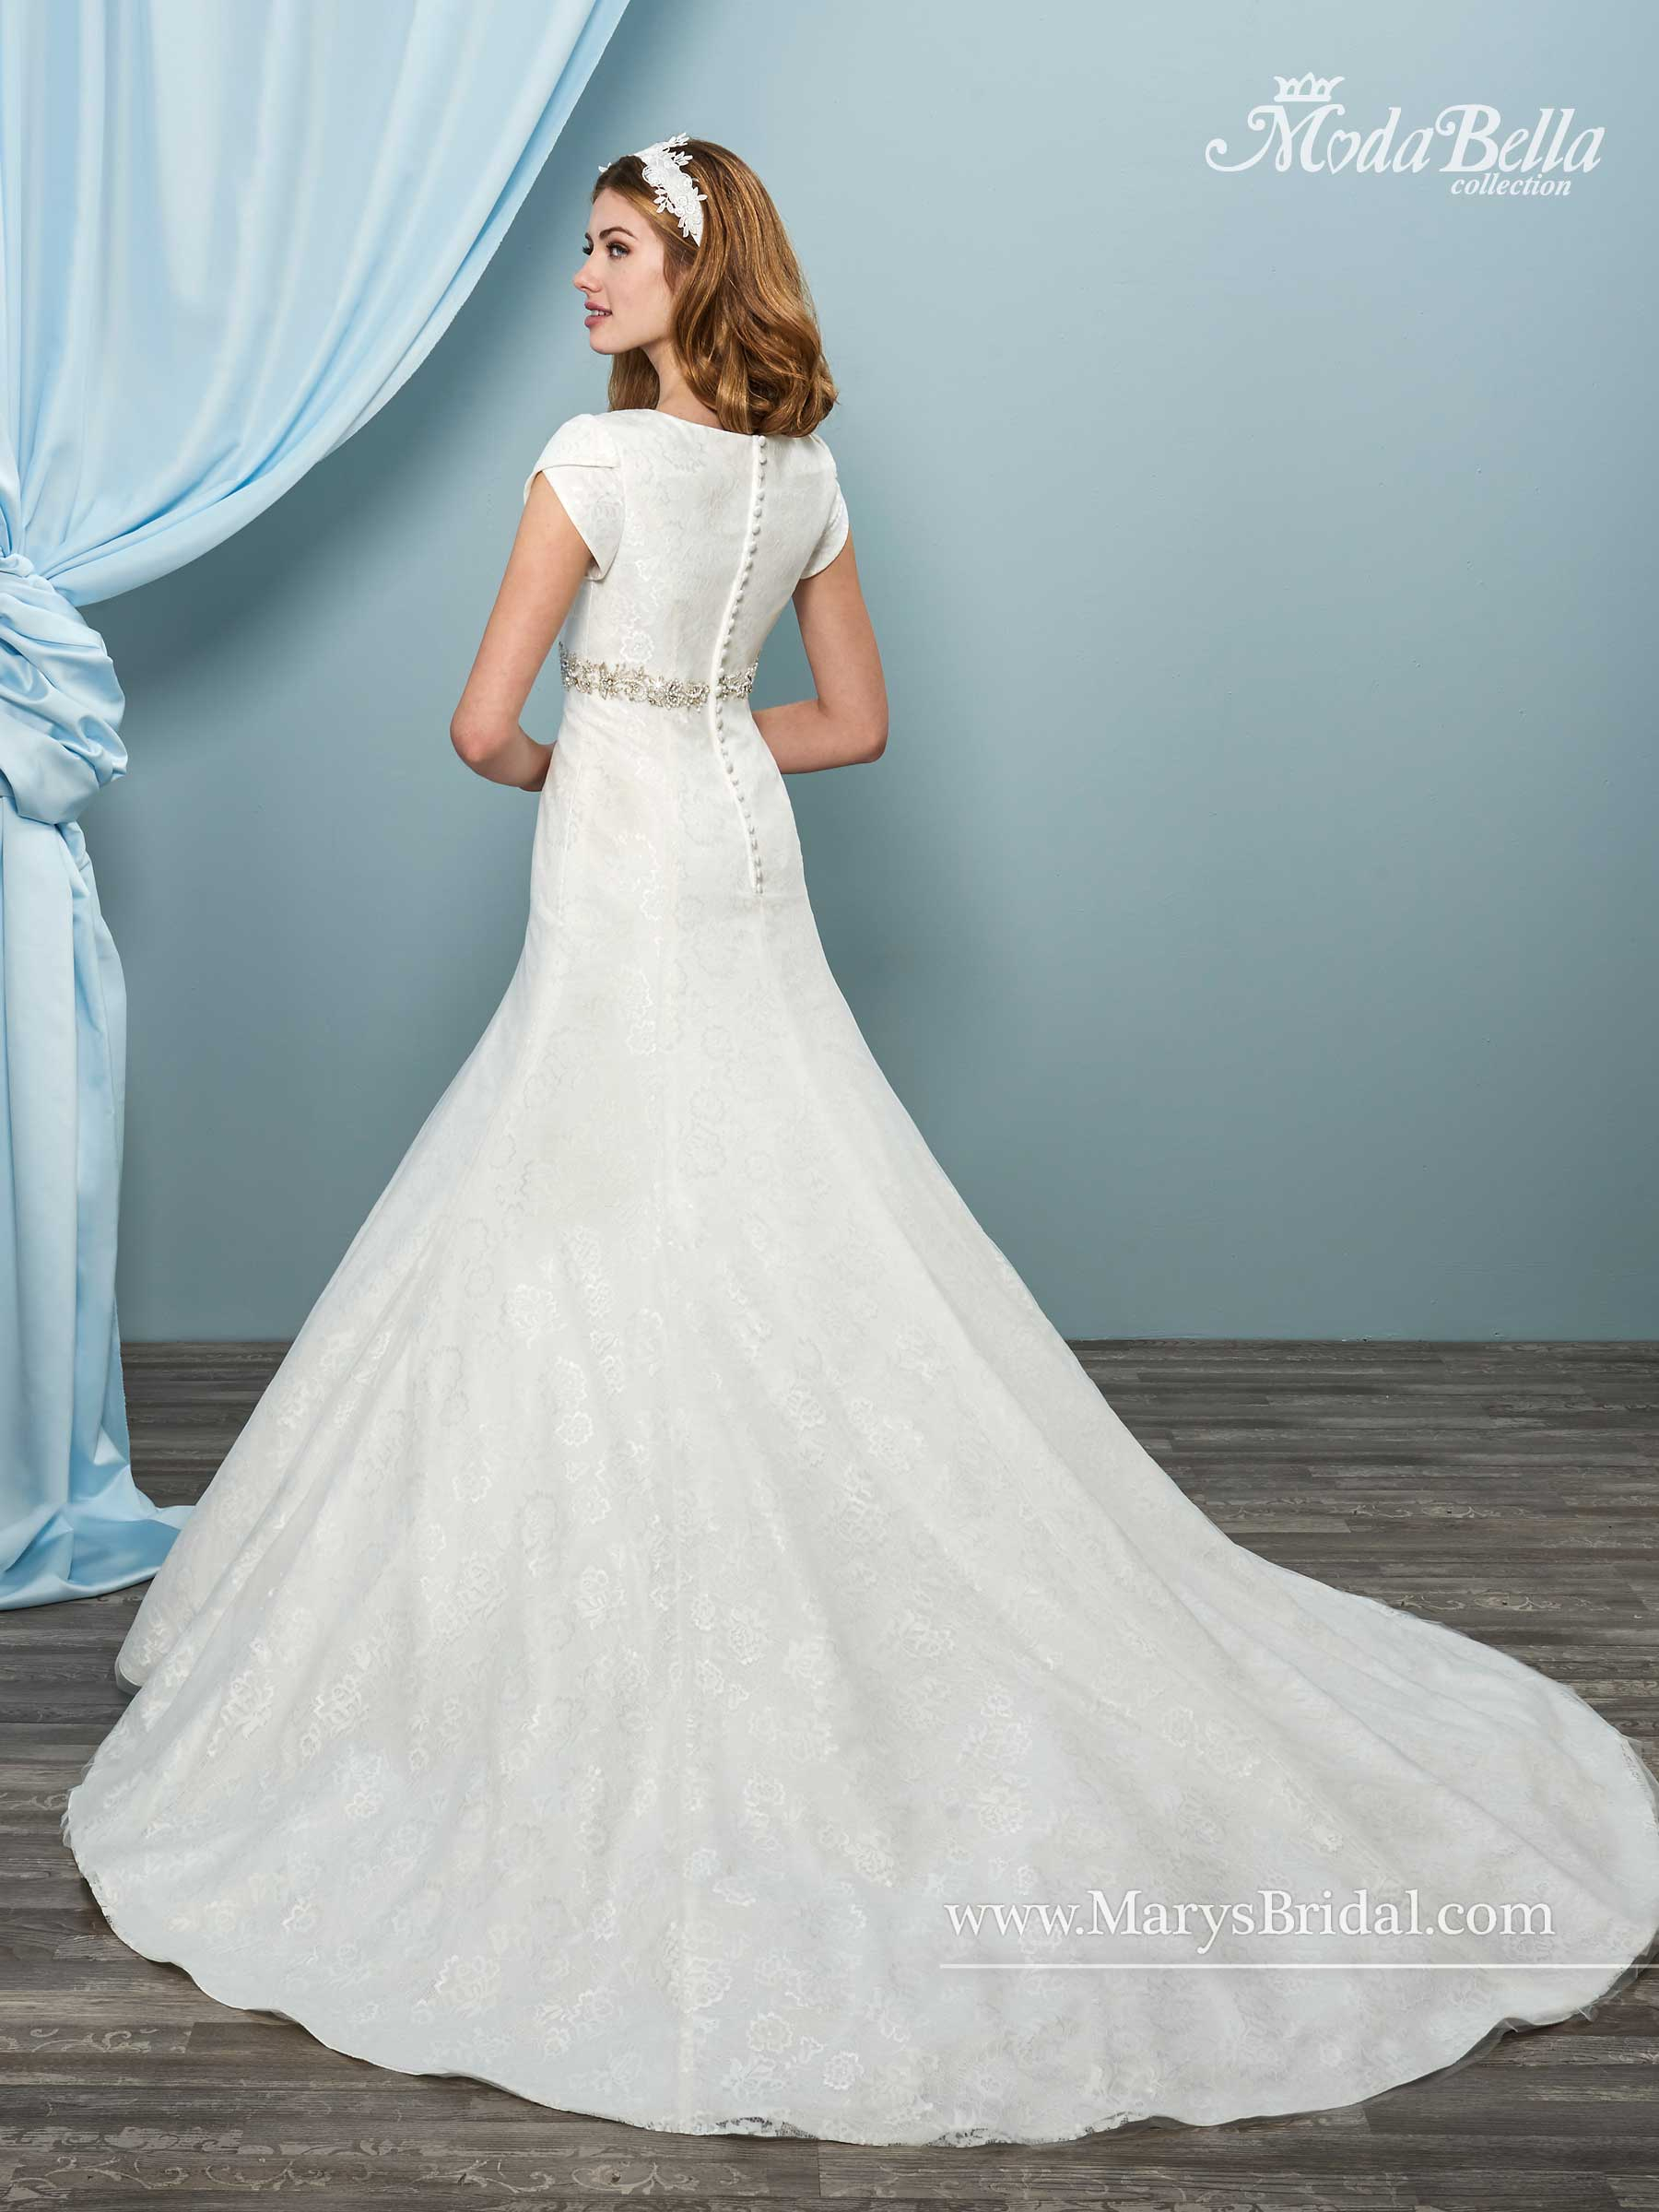 Bridal Dresses | Style - 3Y621 in Ivory or White Color